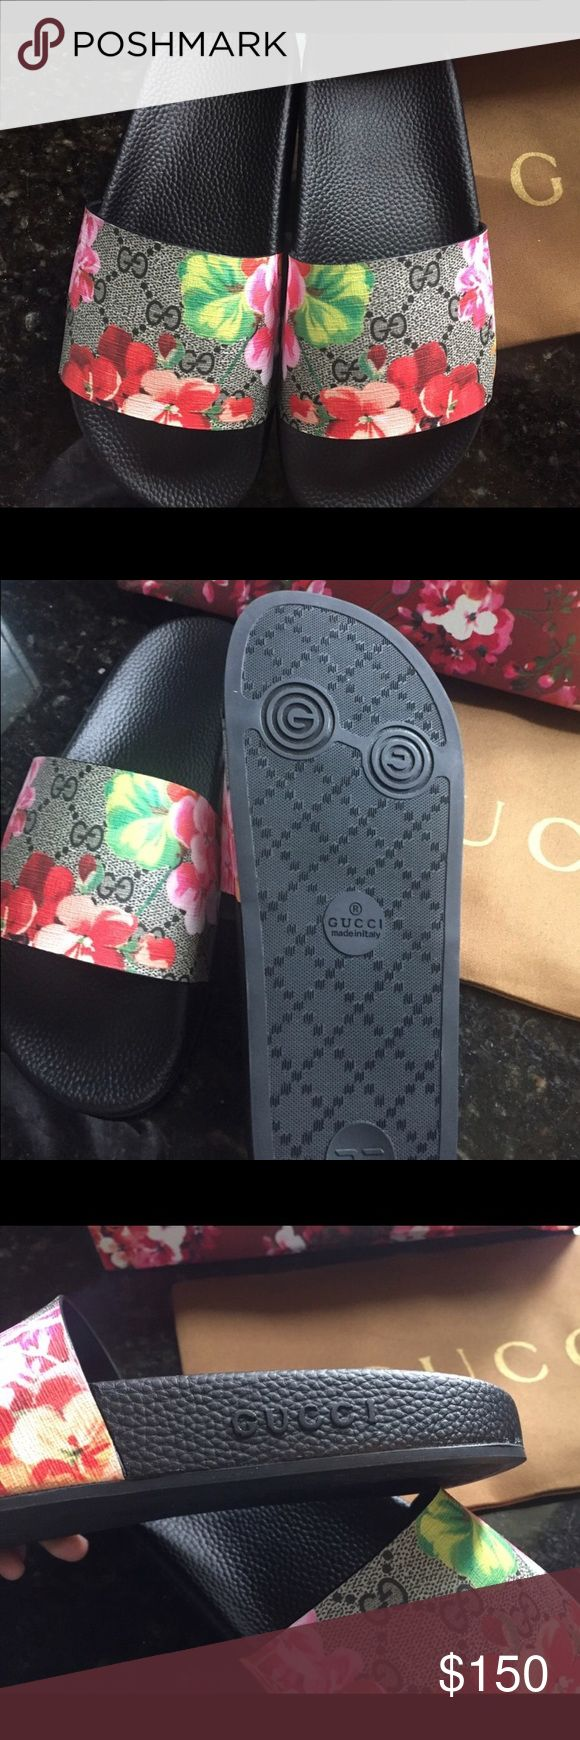 Gucci slides Re posh (price reflects) Gucci Shoes Sandals